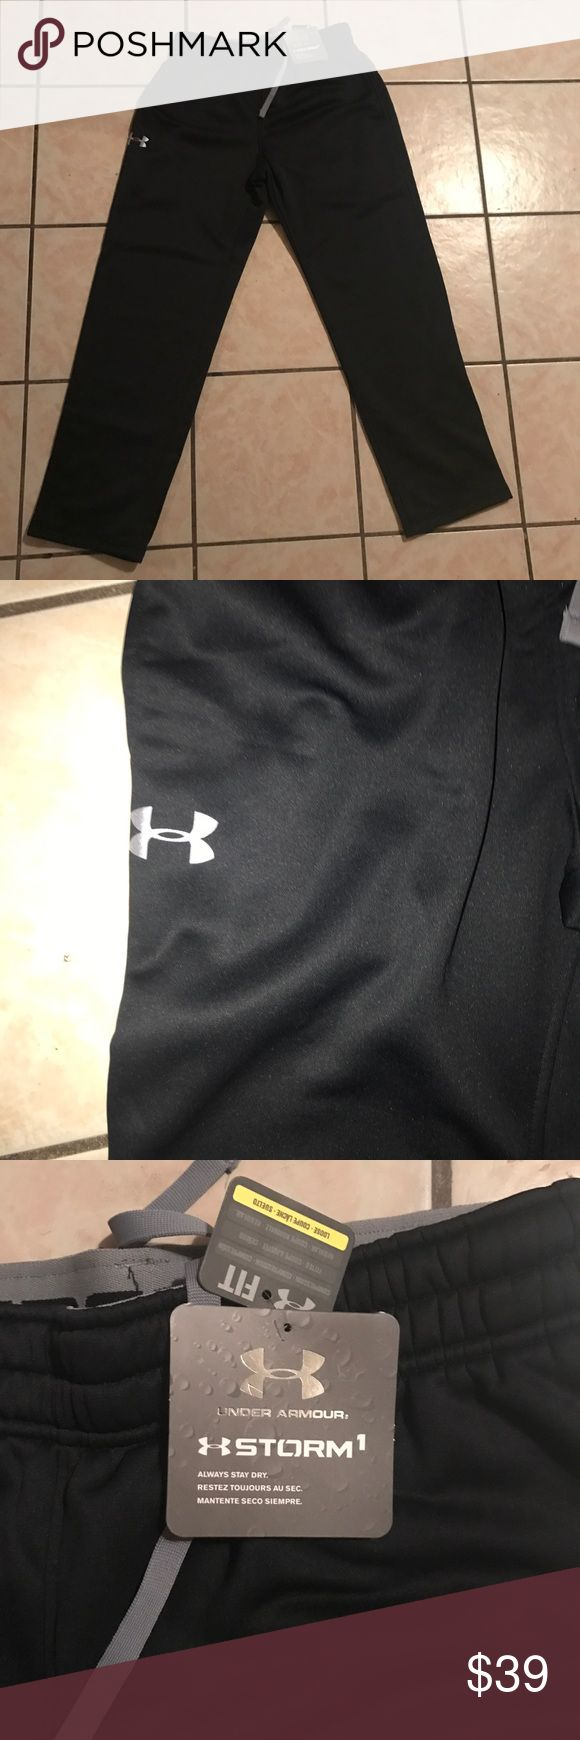 This is are New Mens Under Armour Pants Brand New Men's Under Armour Pants size L , color Black Under Armour Pants Sweatpants & Joggers